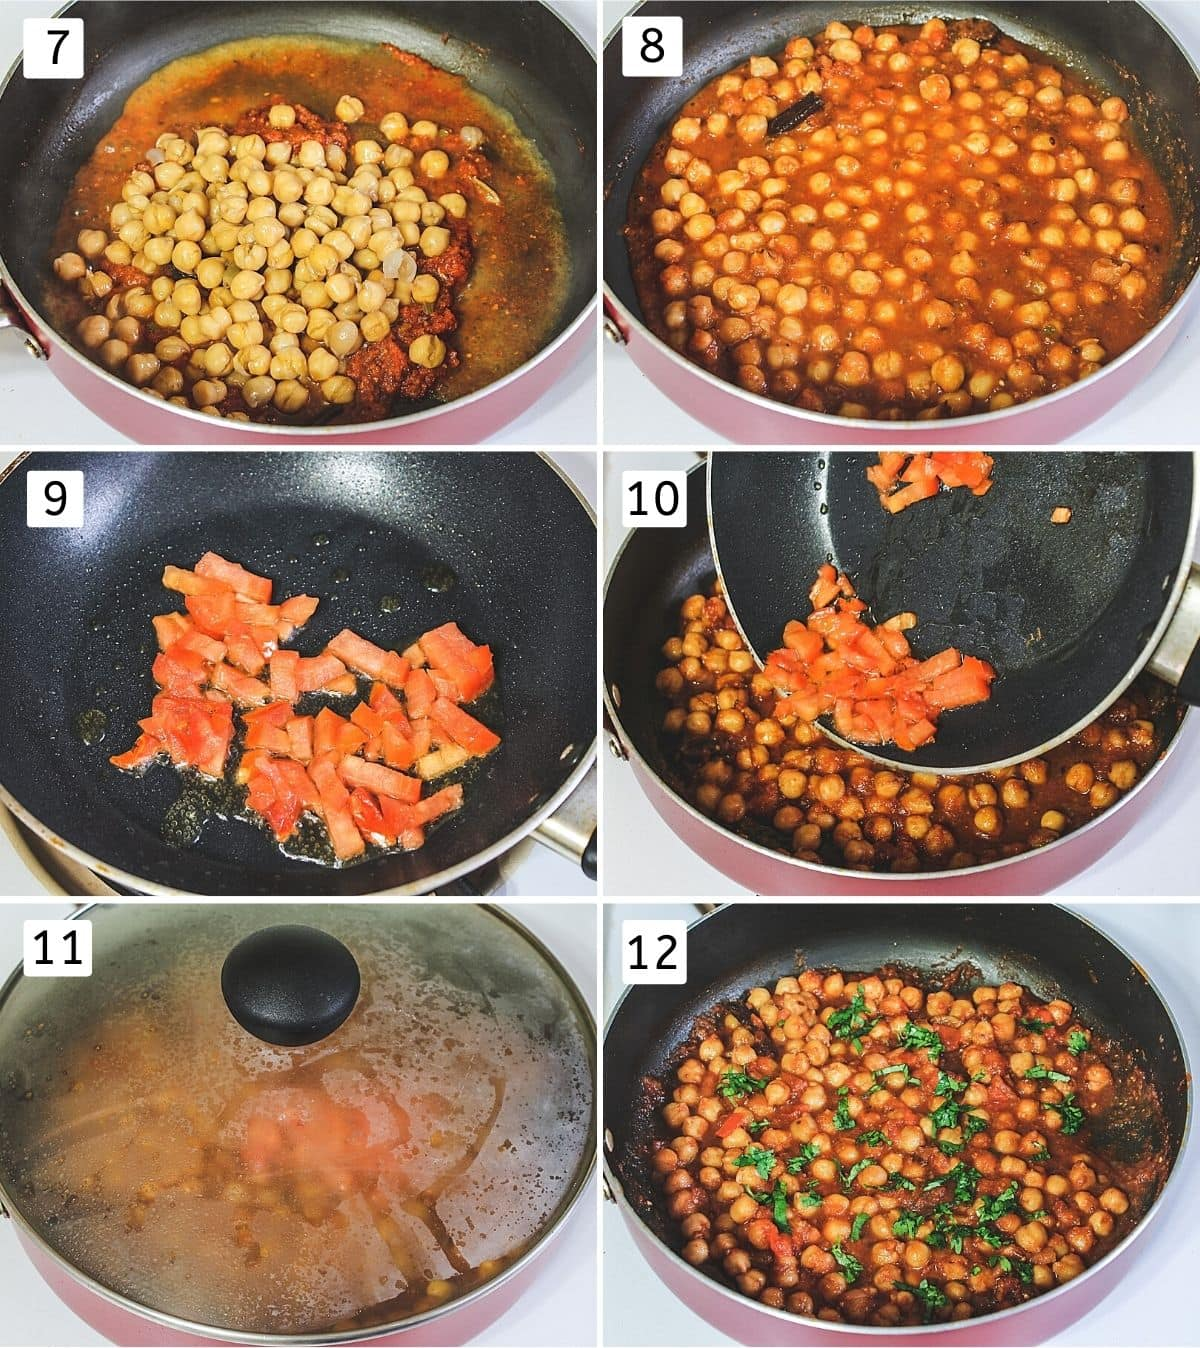 Collage of 6 steps showing adding boiled chickpeas, simmering, tempering with tomatoes, adding tadka, covered the pan, adding cilantro.